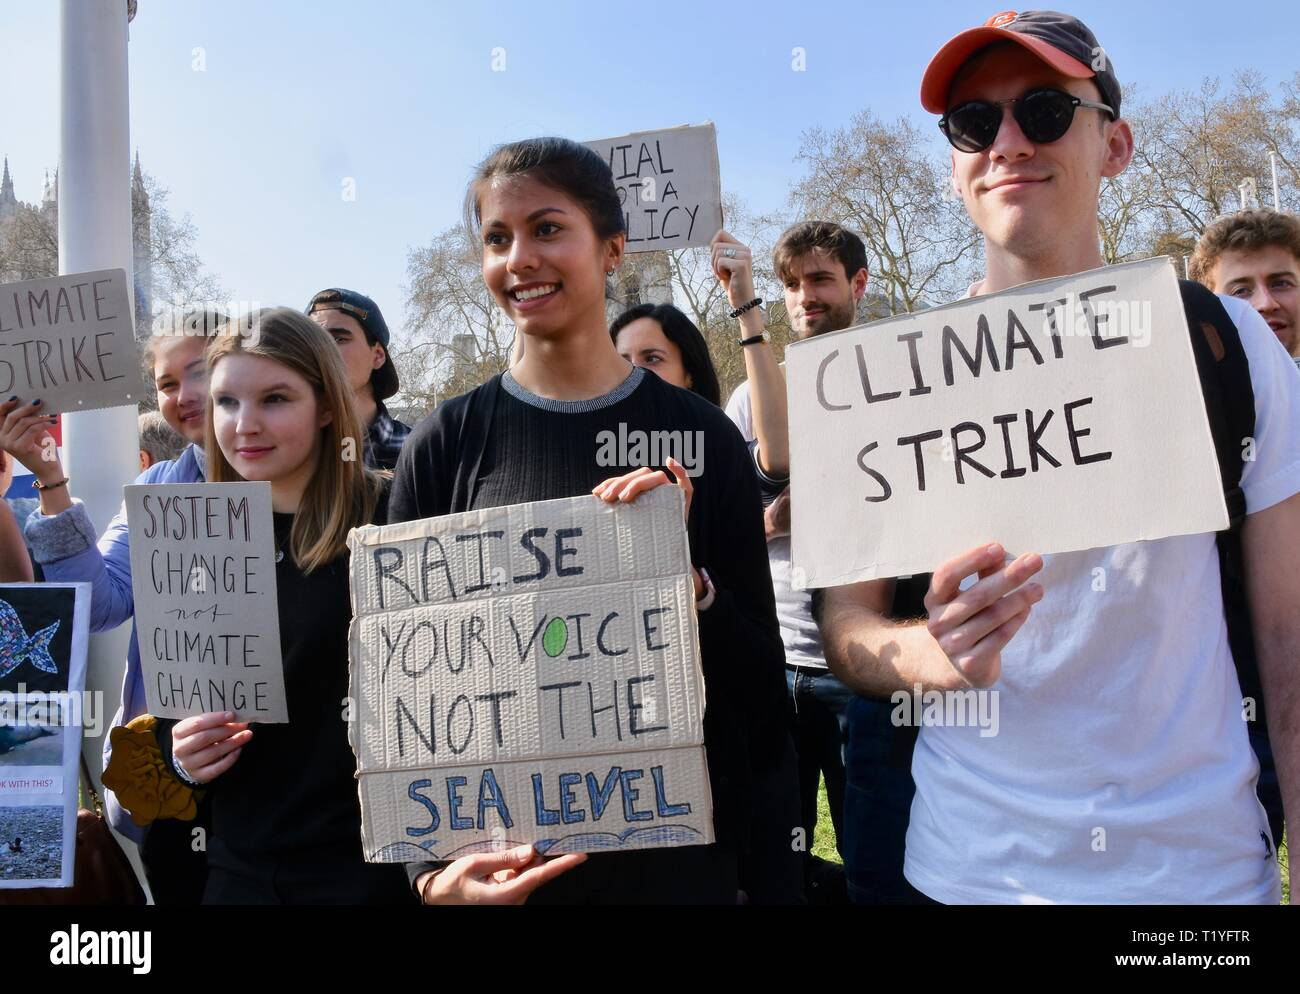 29th Mar 2019. Youth Strike 4 Climate, Climate Change Protest, Parliament Square, Westminster, London. UK Credit: michael melia/Alamy Live News Stock Photo